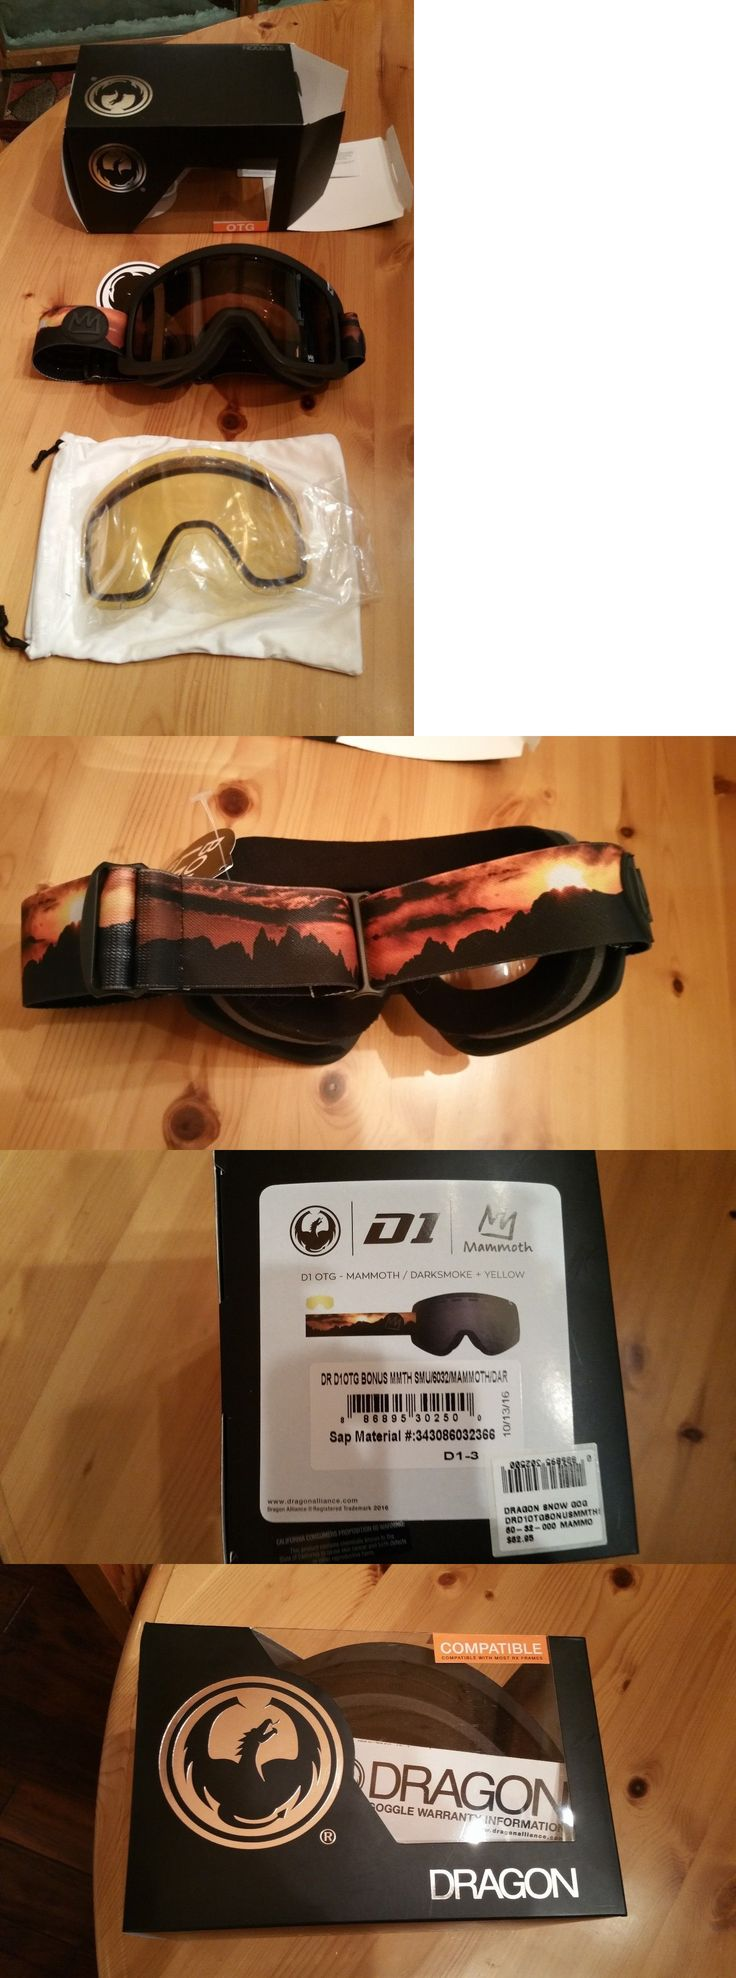 Goggles and Sunglasses 21230: New Dragon Mammoth Mountain Mens Ski Snowboard Goggles, 2 Lenses, New In Box -> BUY IT NOW ONLY: $36.99 on eBay!